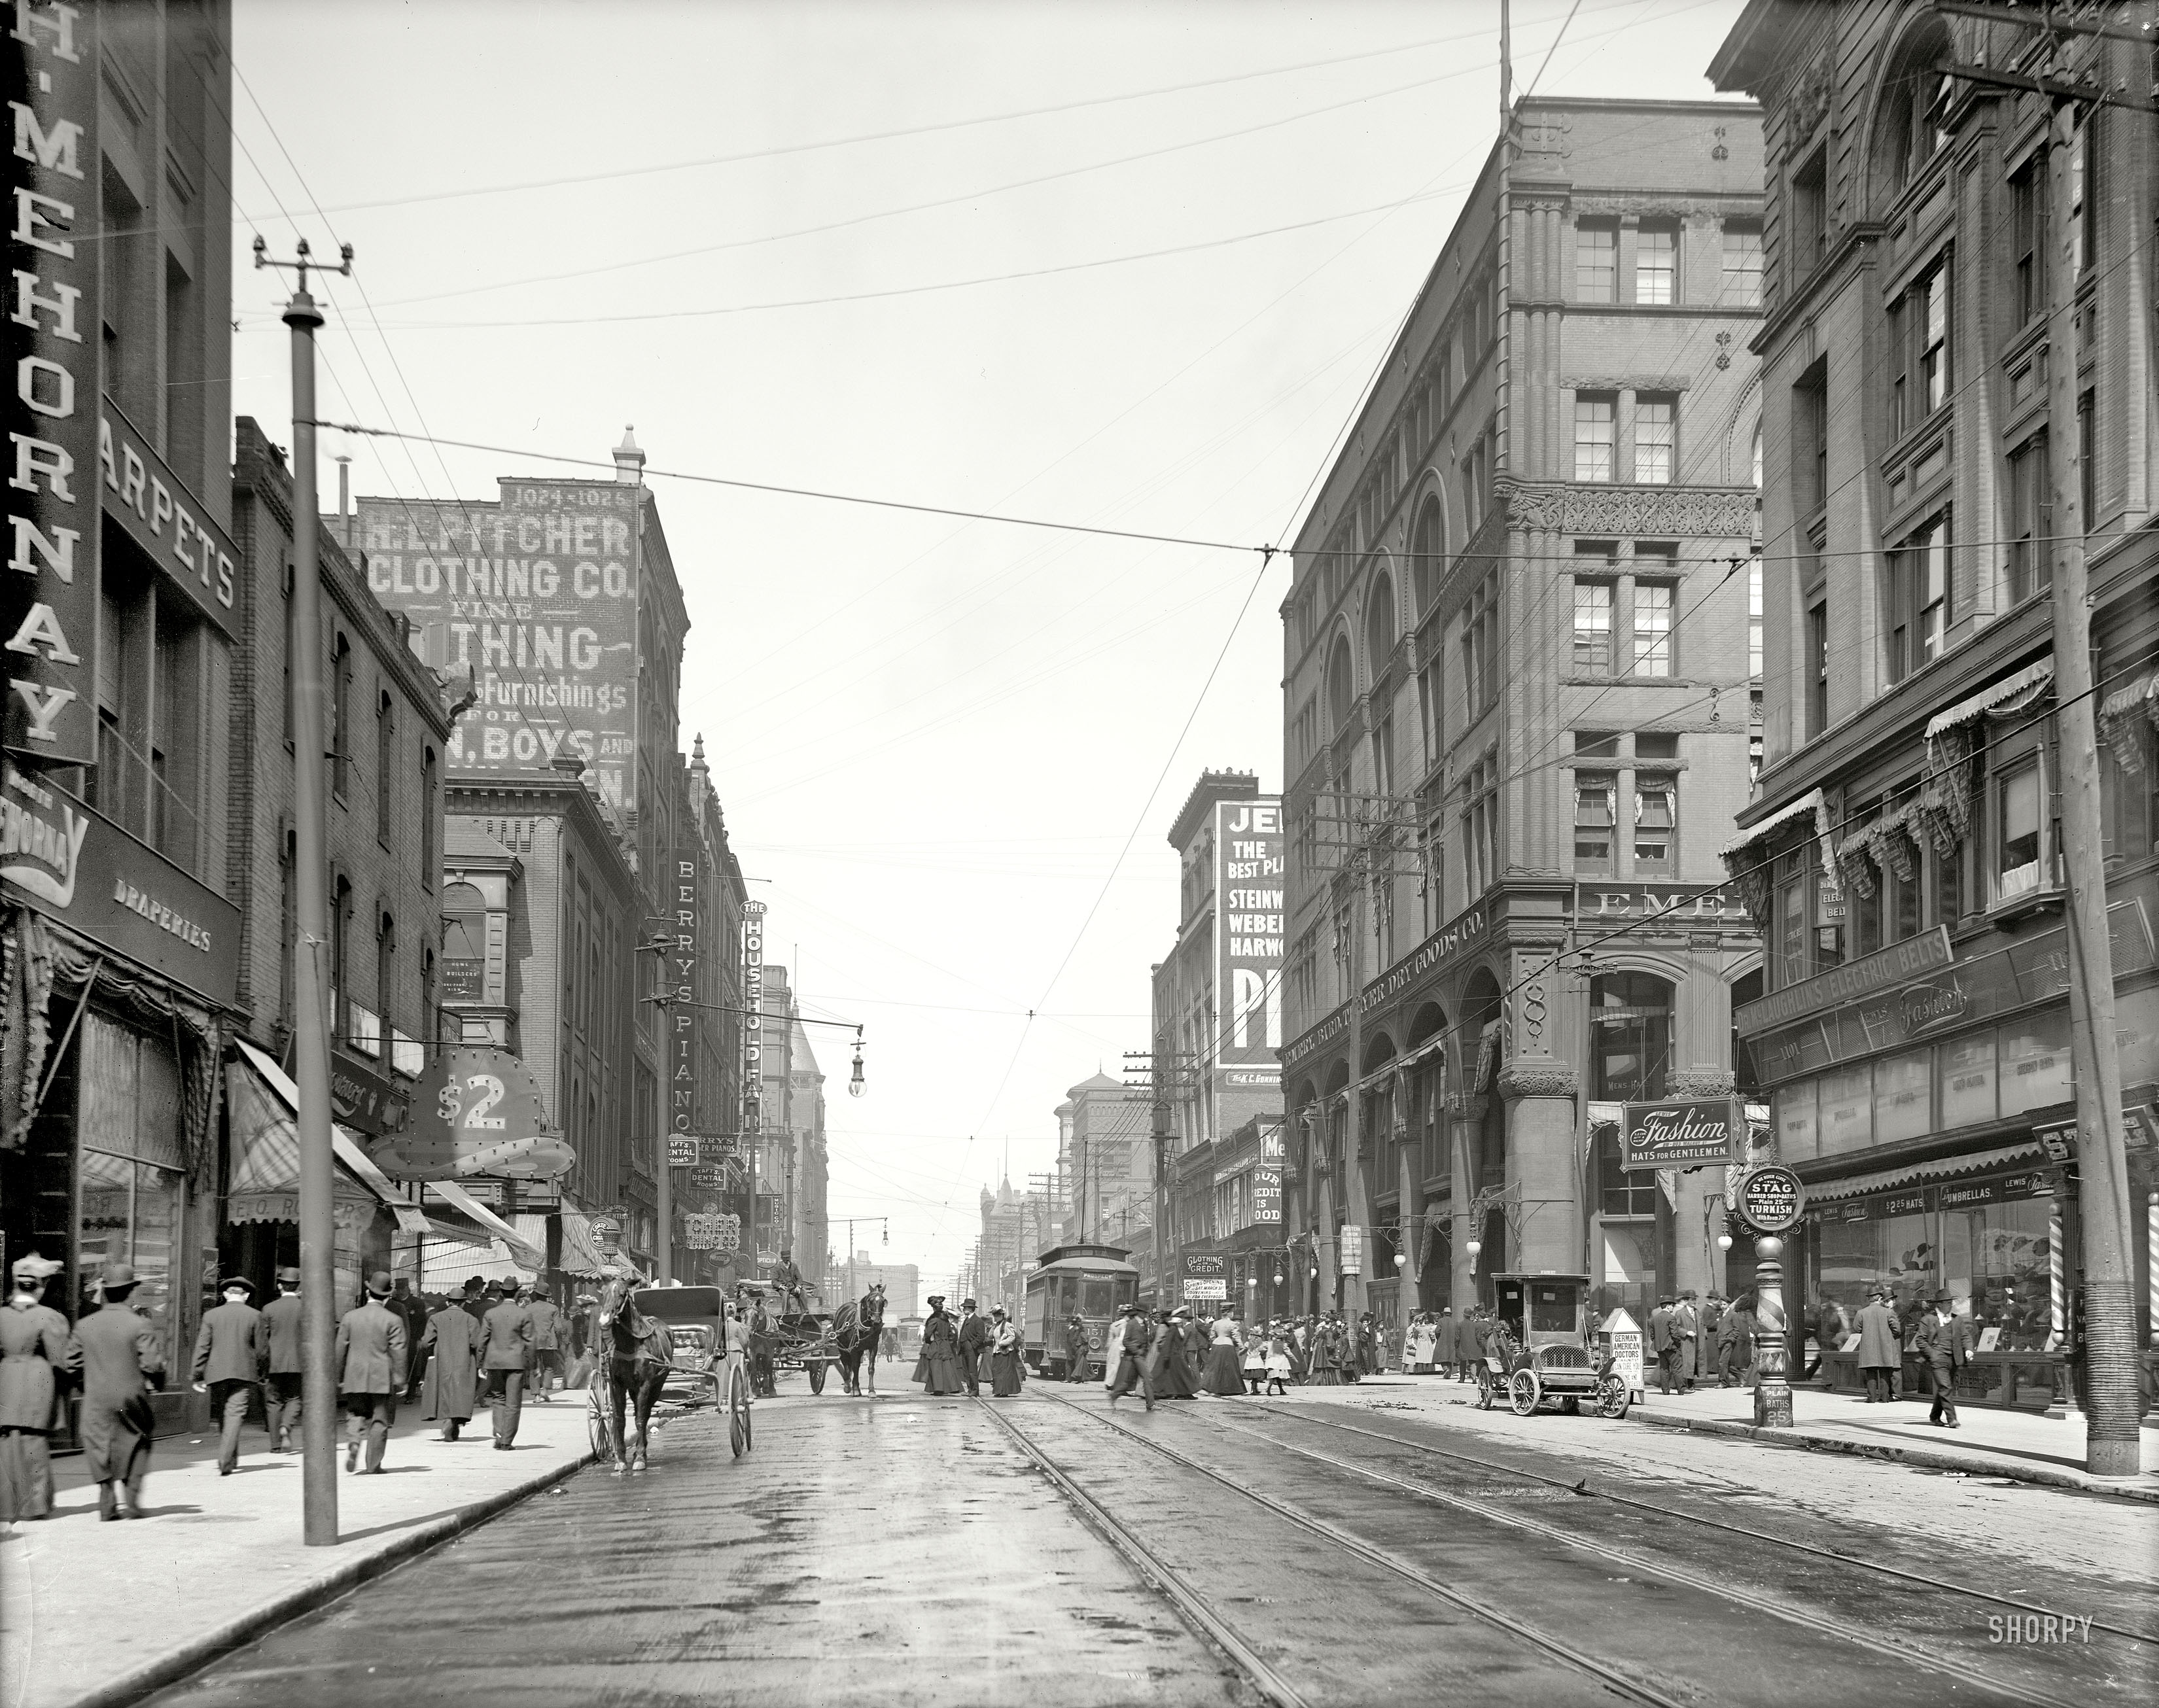 Historic image of people walking on a street